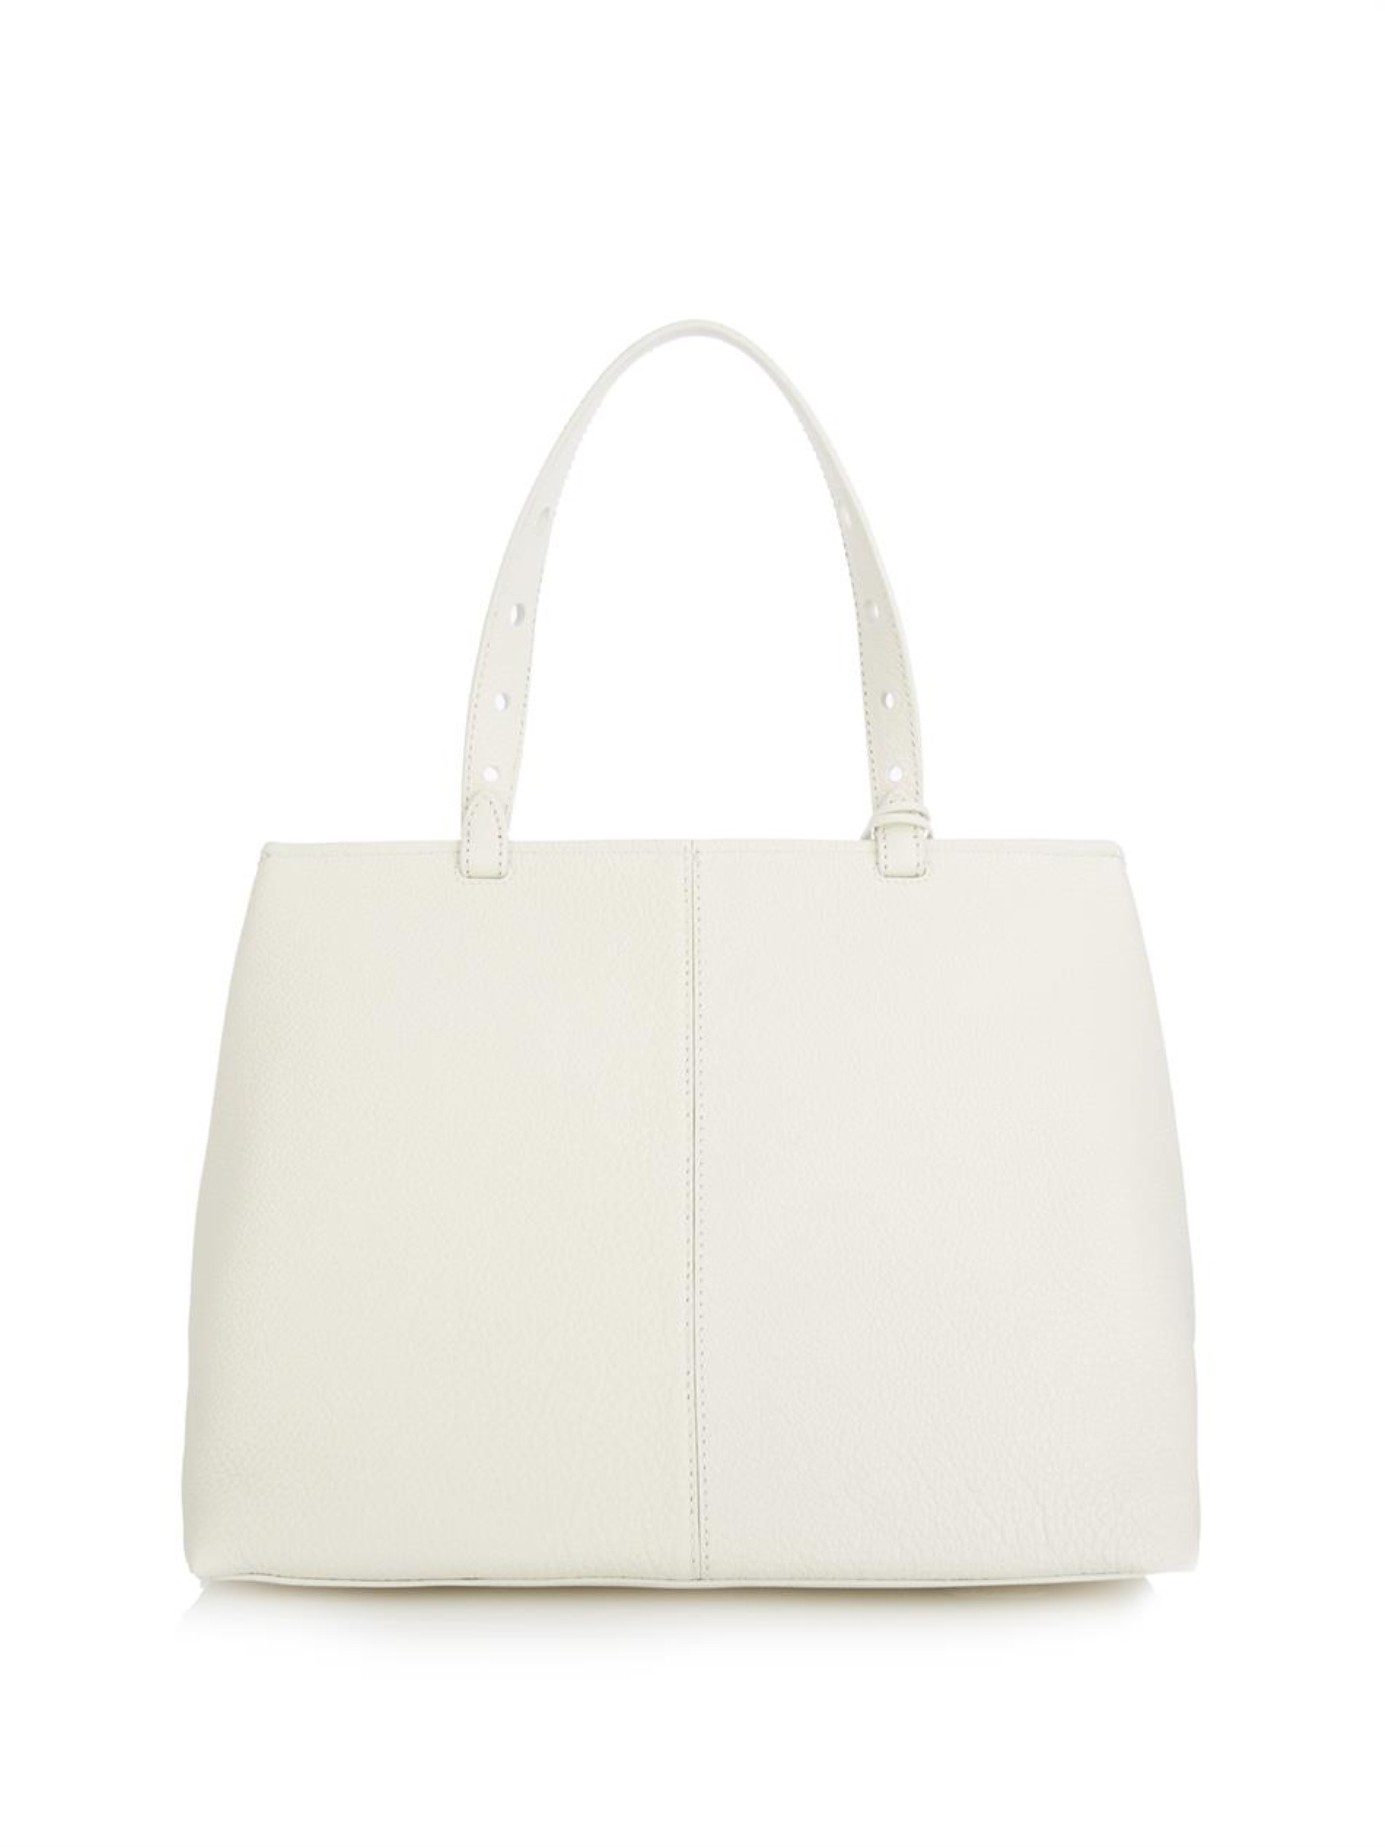 Myriam Schaefer Leather Baby Lord Tote in White